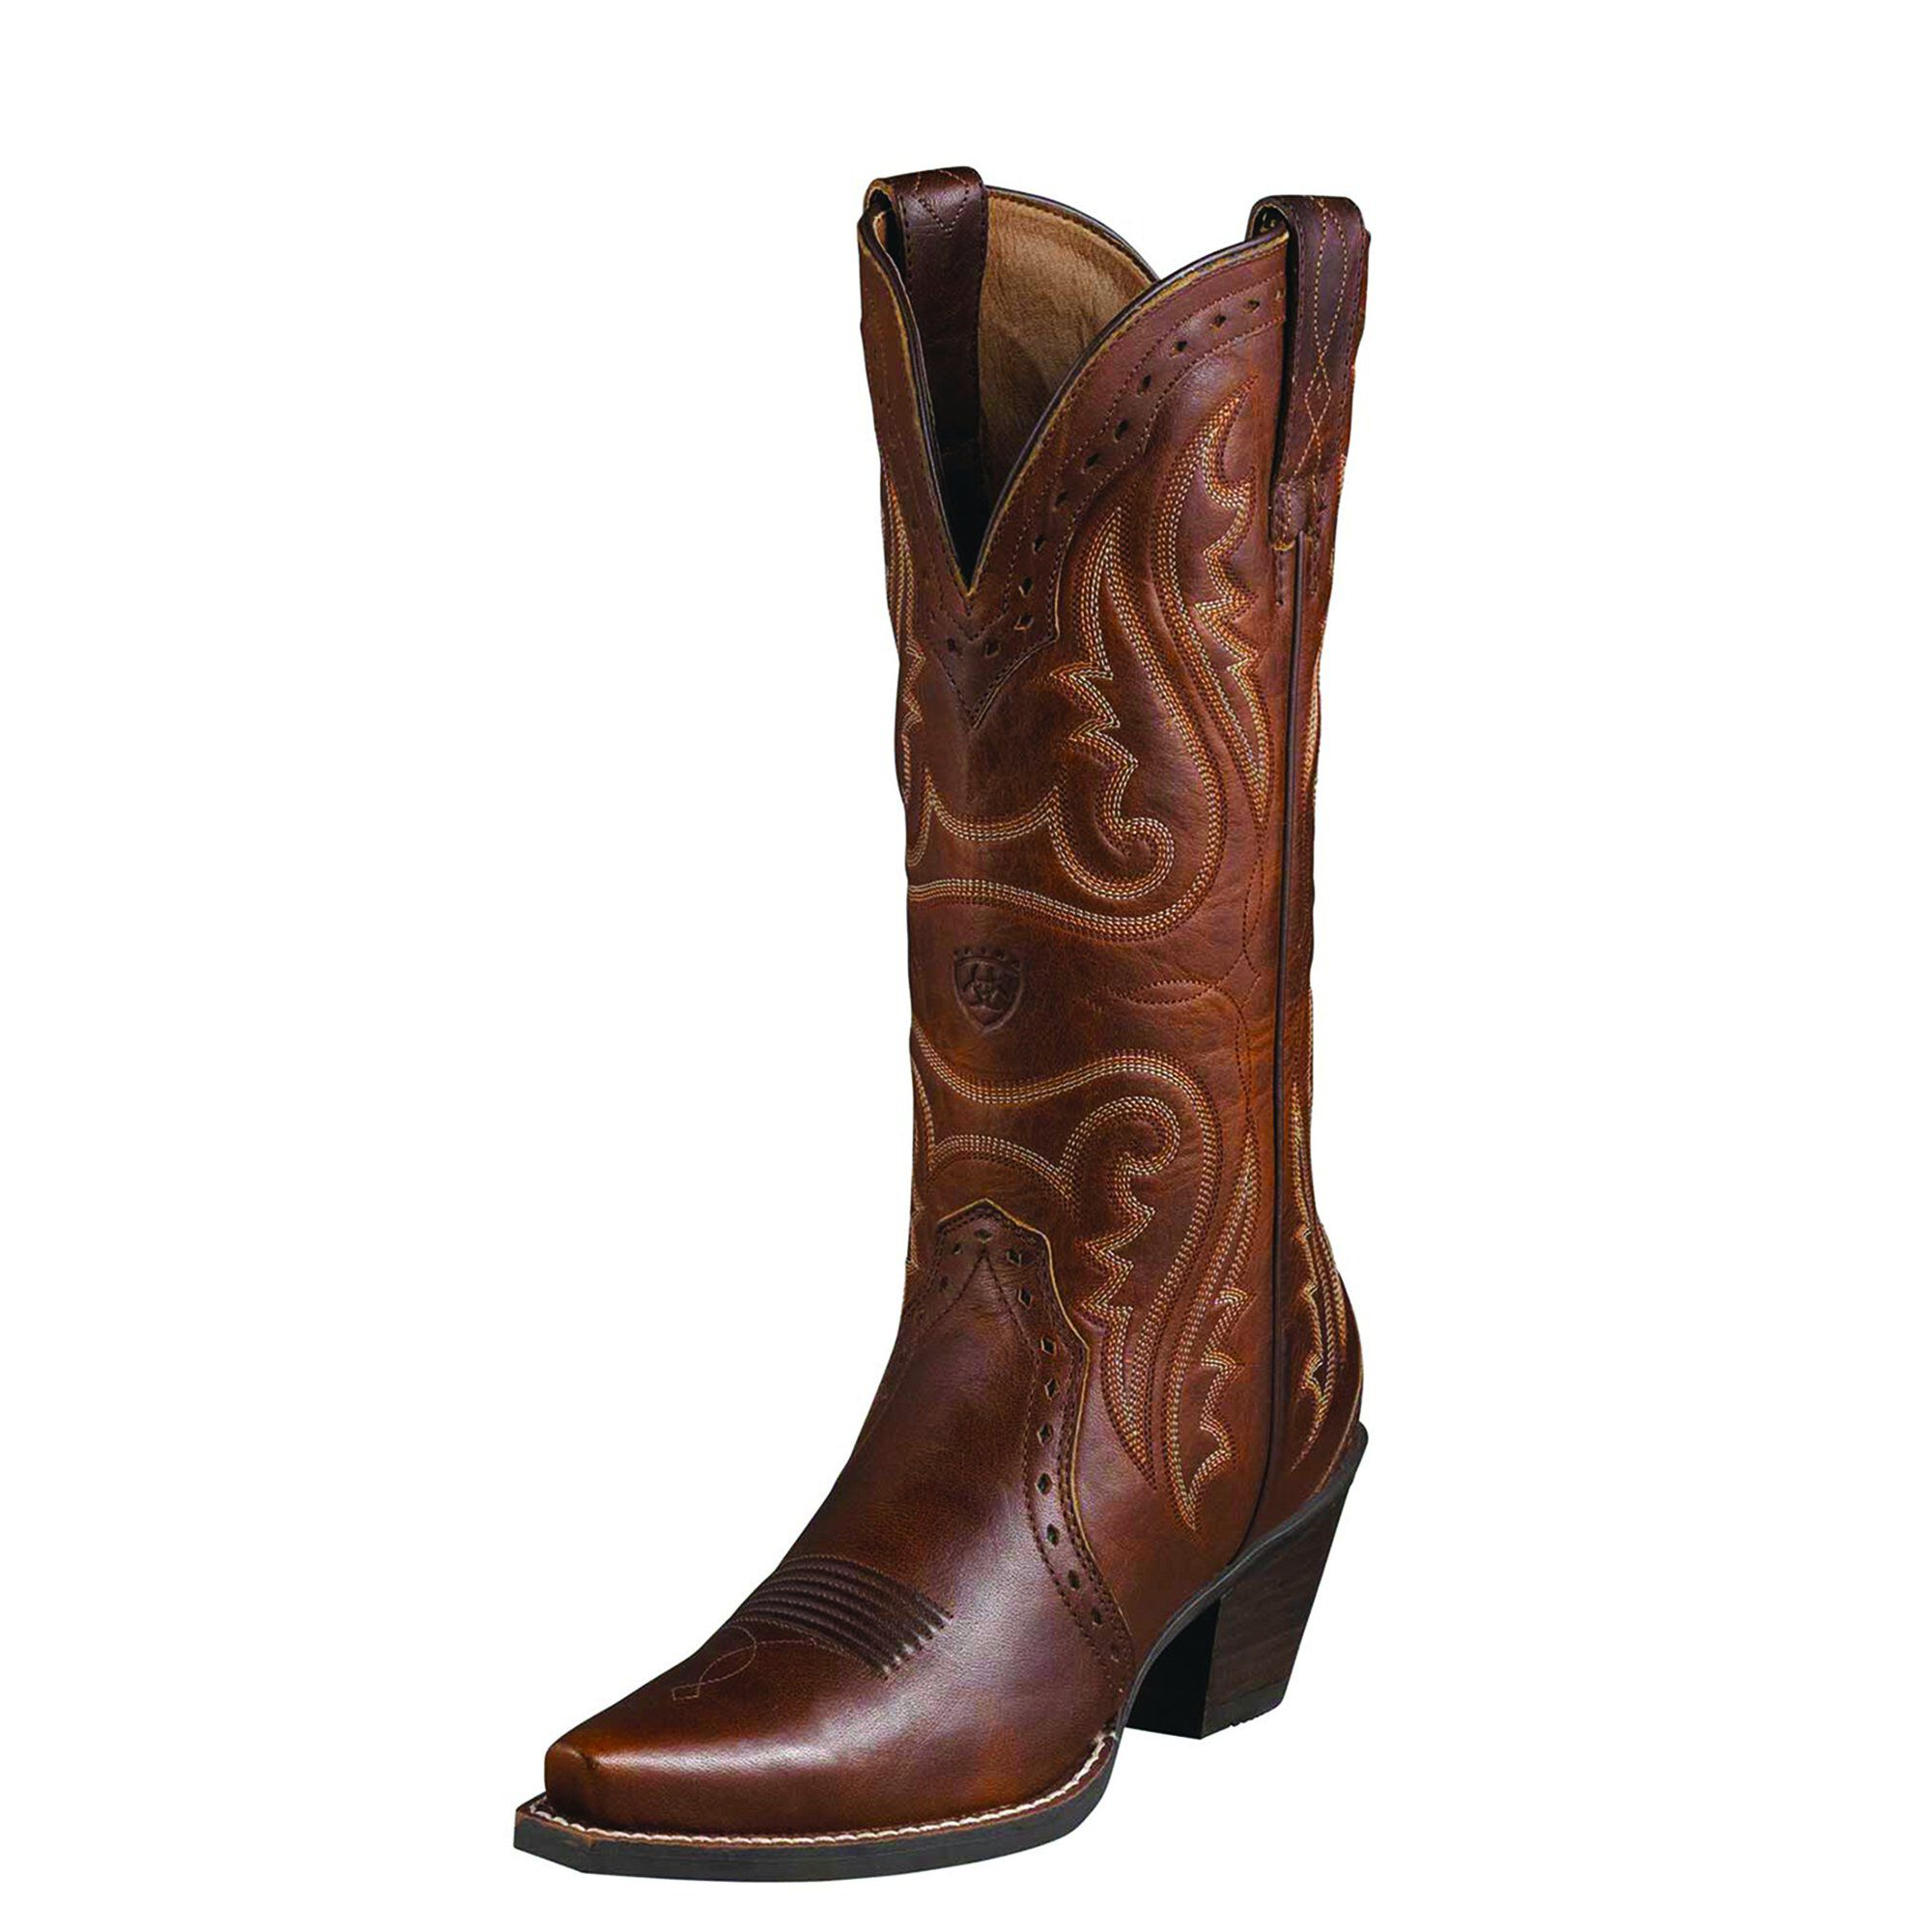 Women's Heritage Western X Toe Western Boots in Vintage Carmel Leather by Ariat